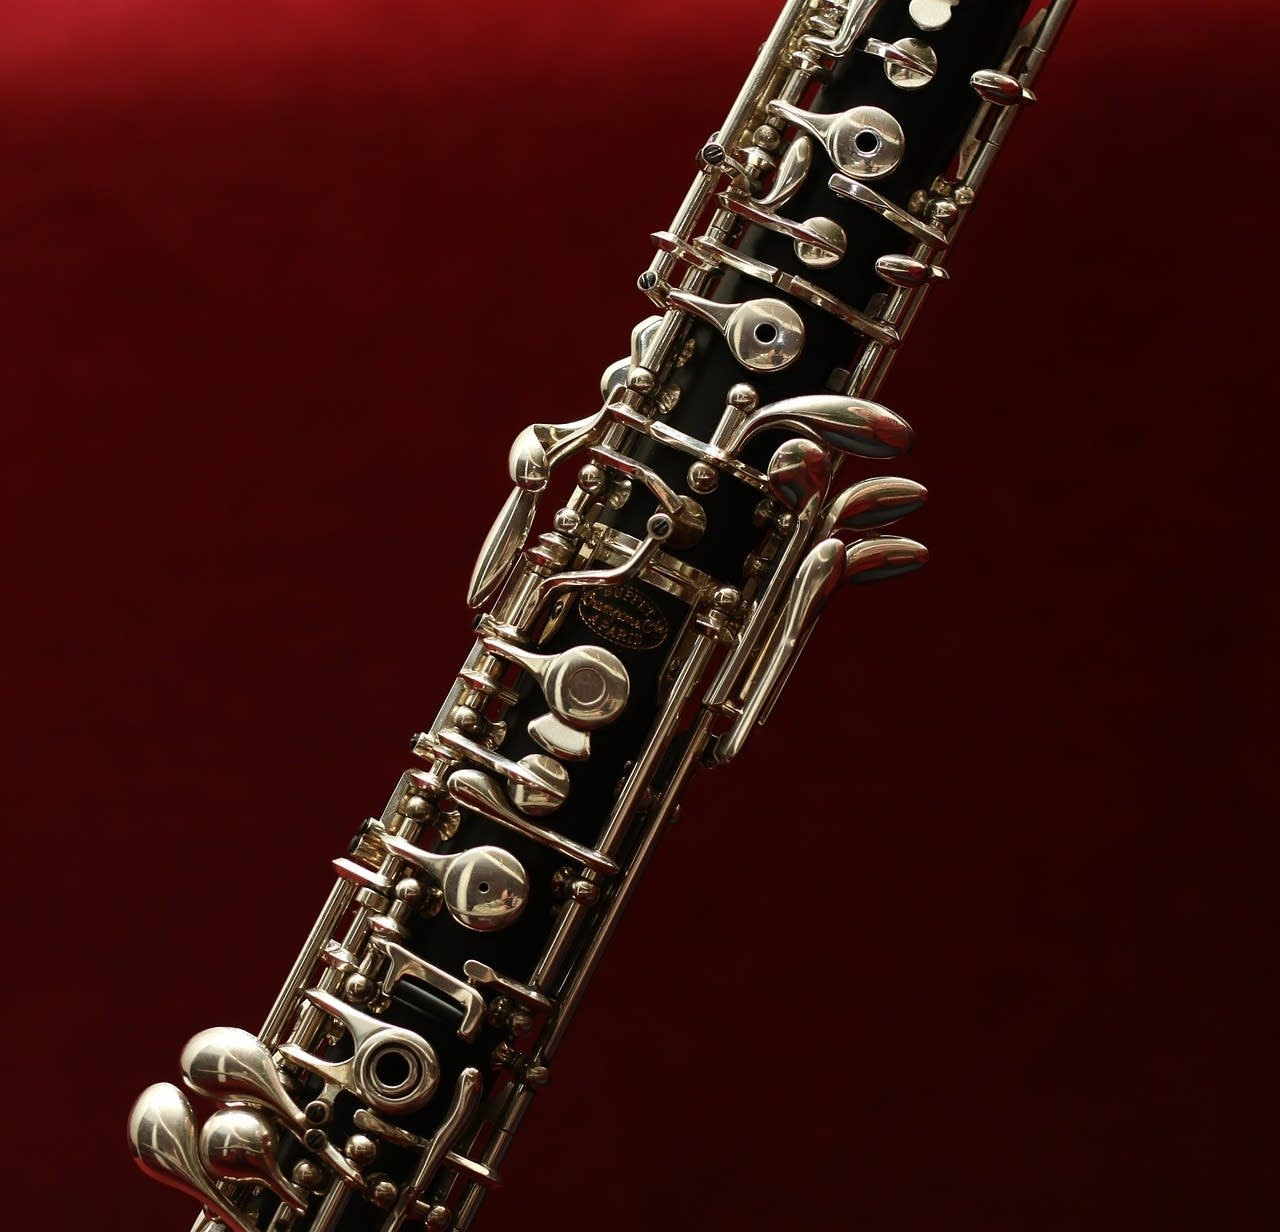 The oboe is part of the wind instrument family.